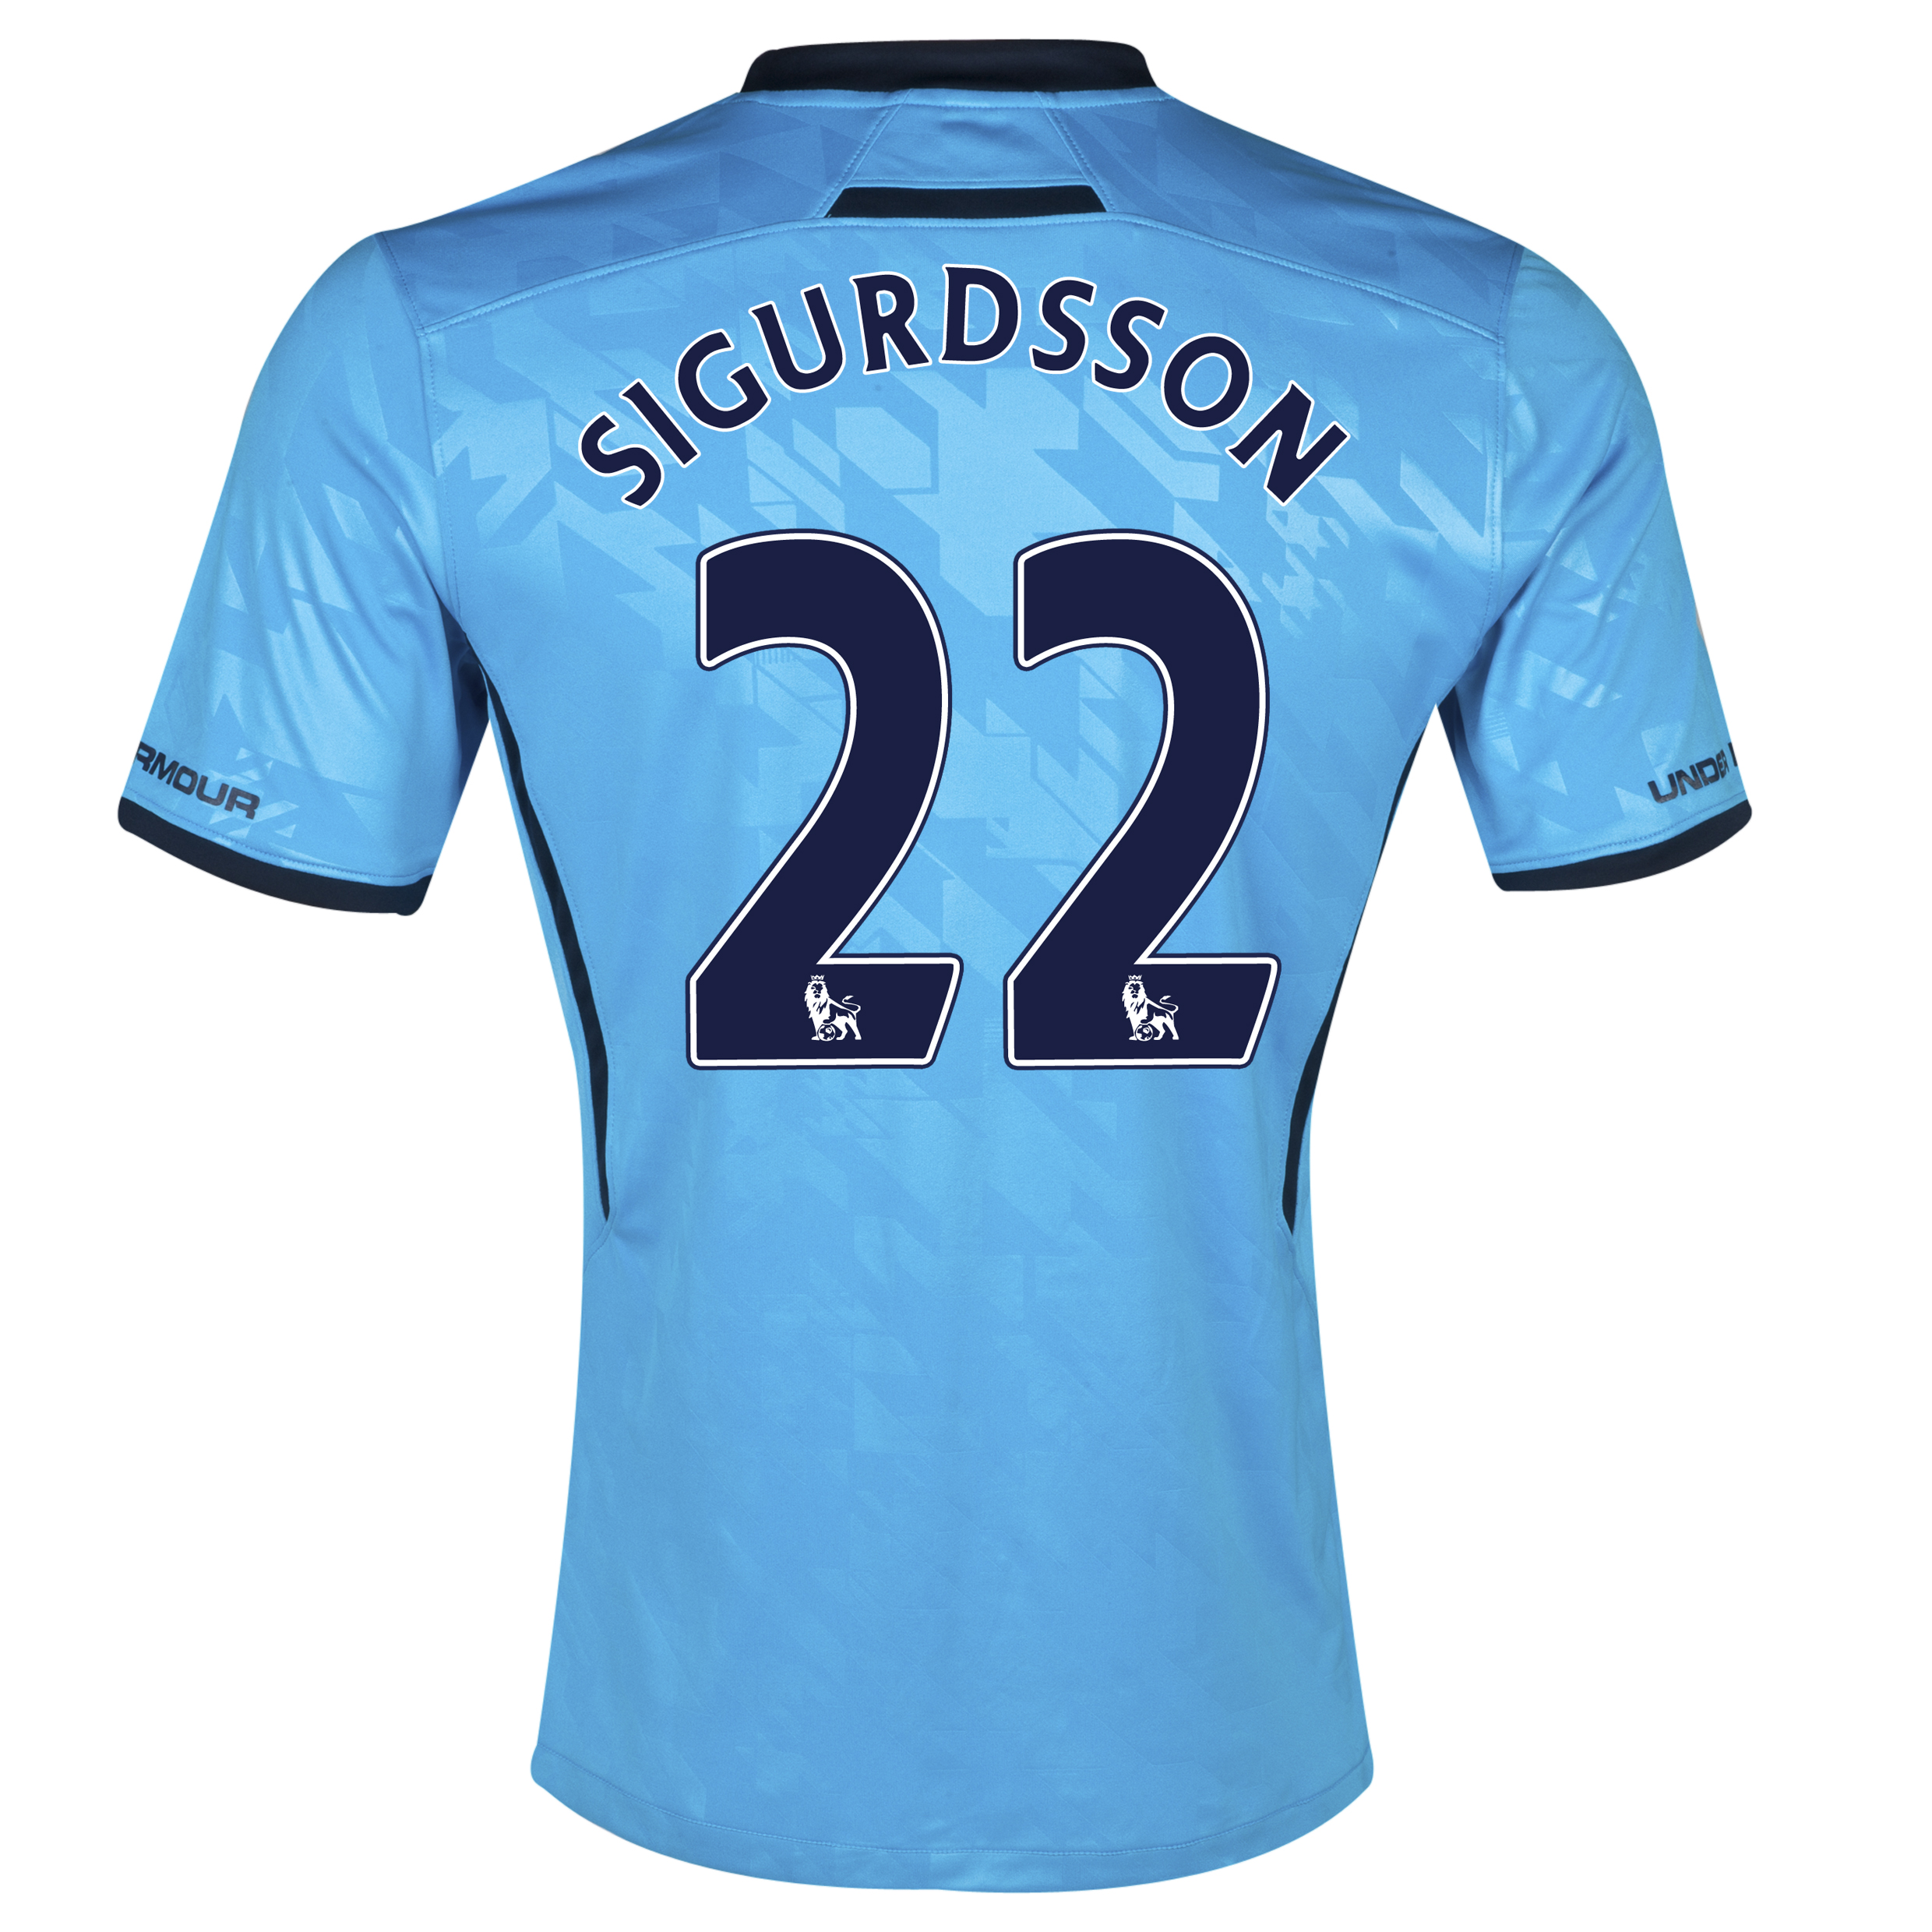 Tottenham Hotspur Away Shirt 2013/14 with Sigurdsson 22 printing